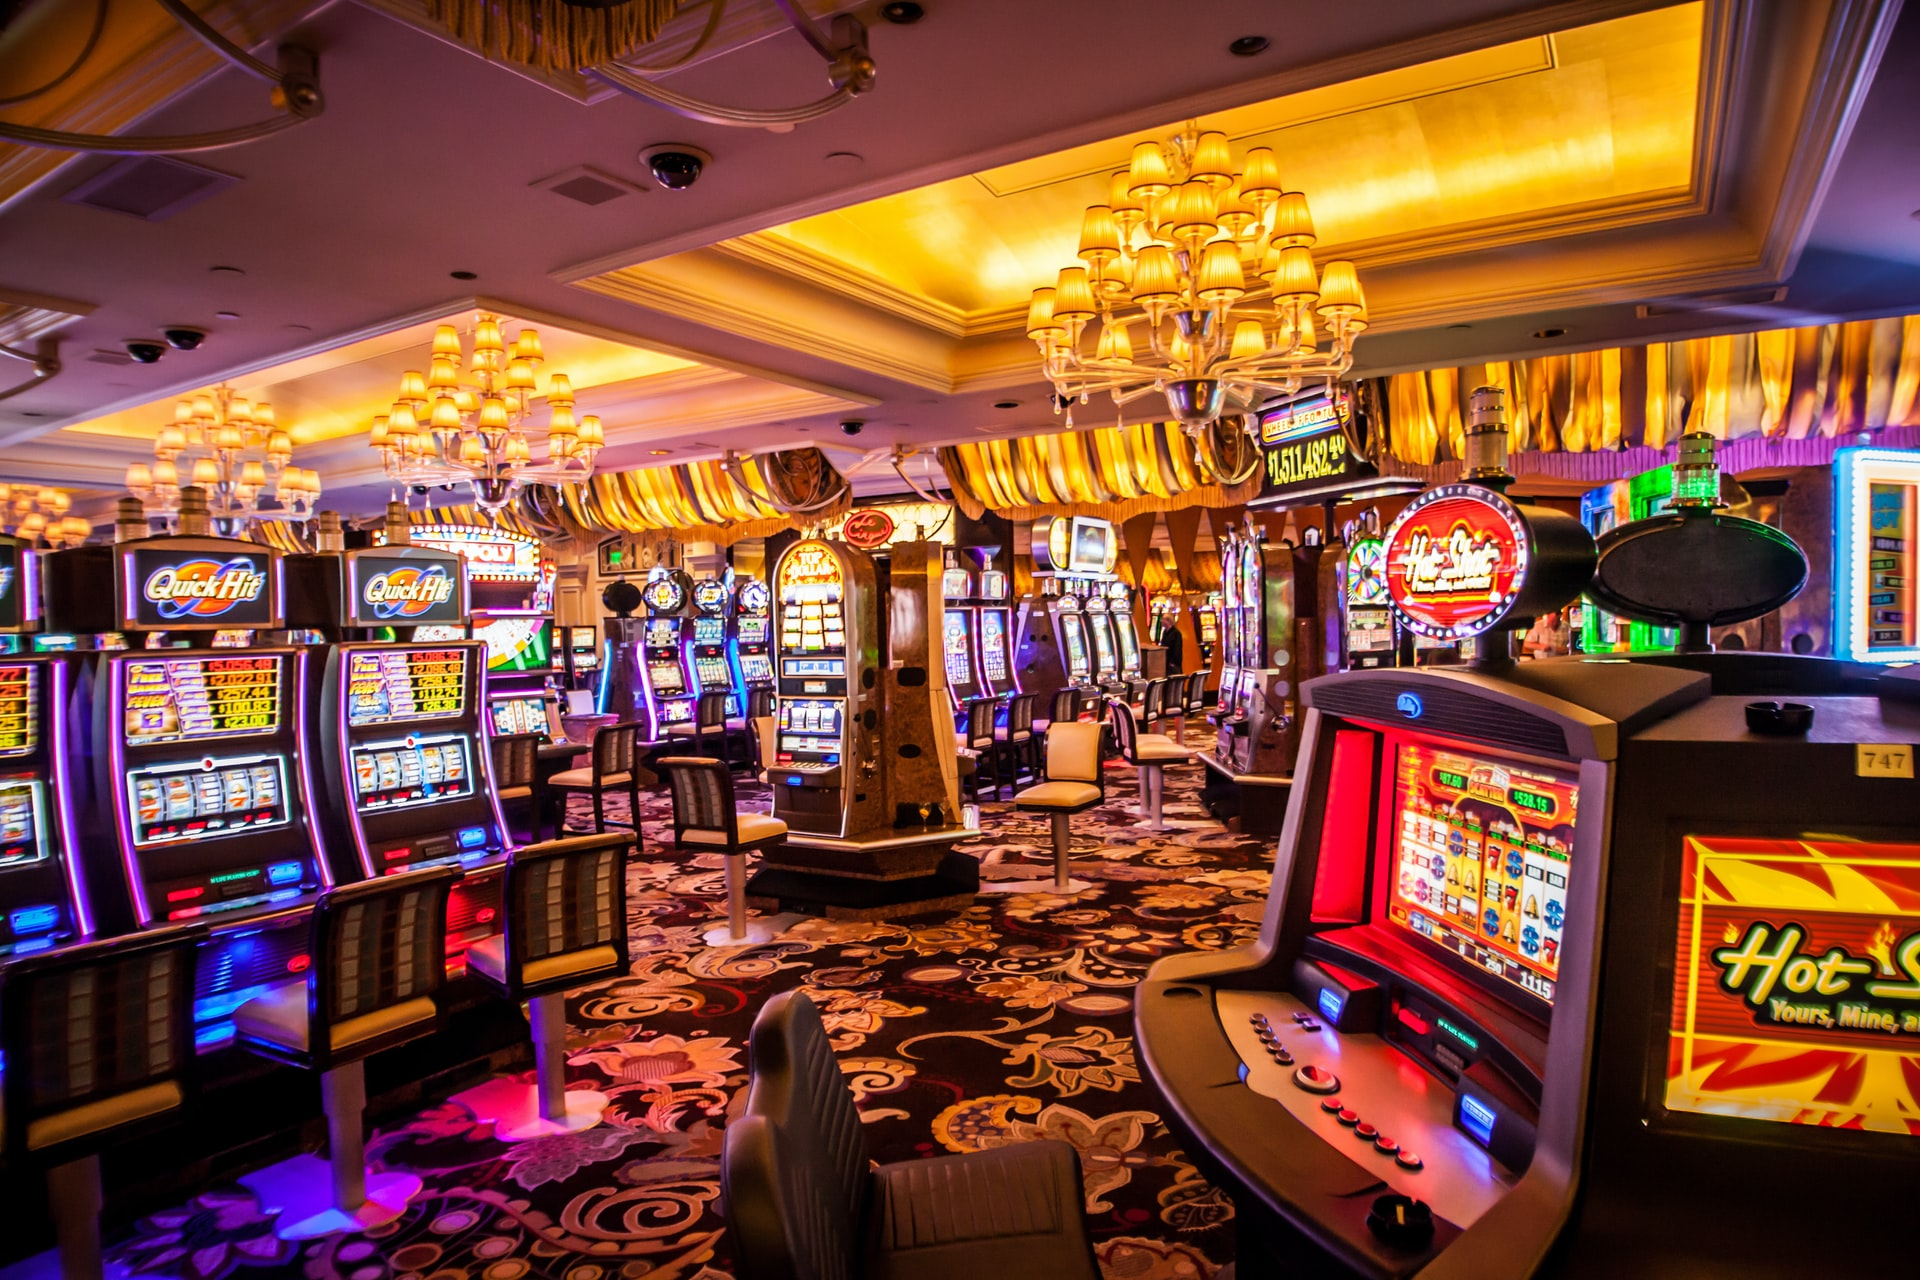 Here are the secrets to winning on slot machines